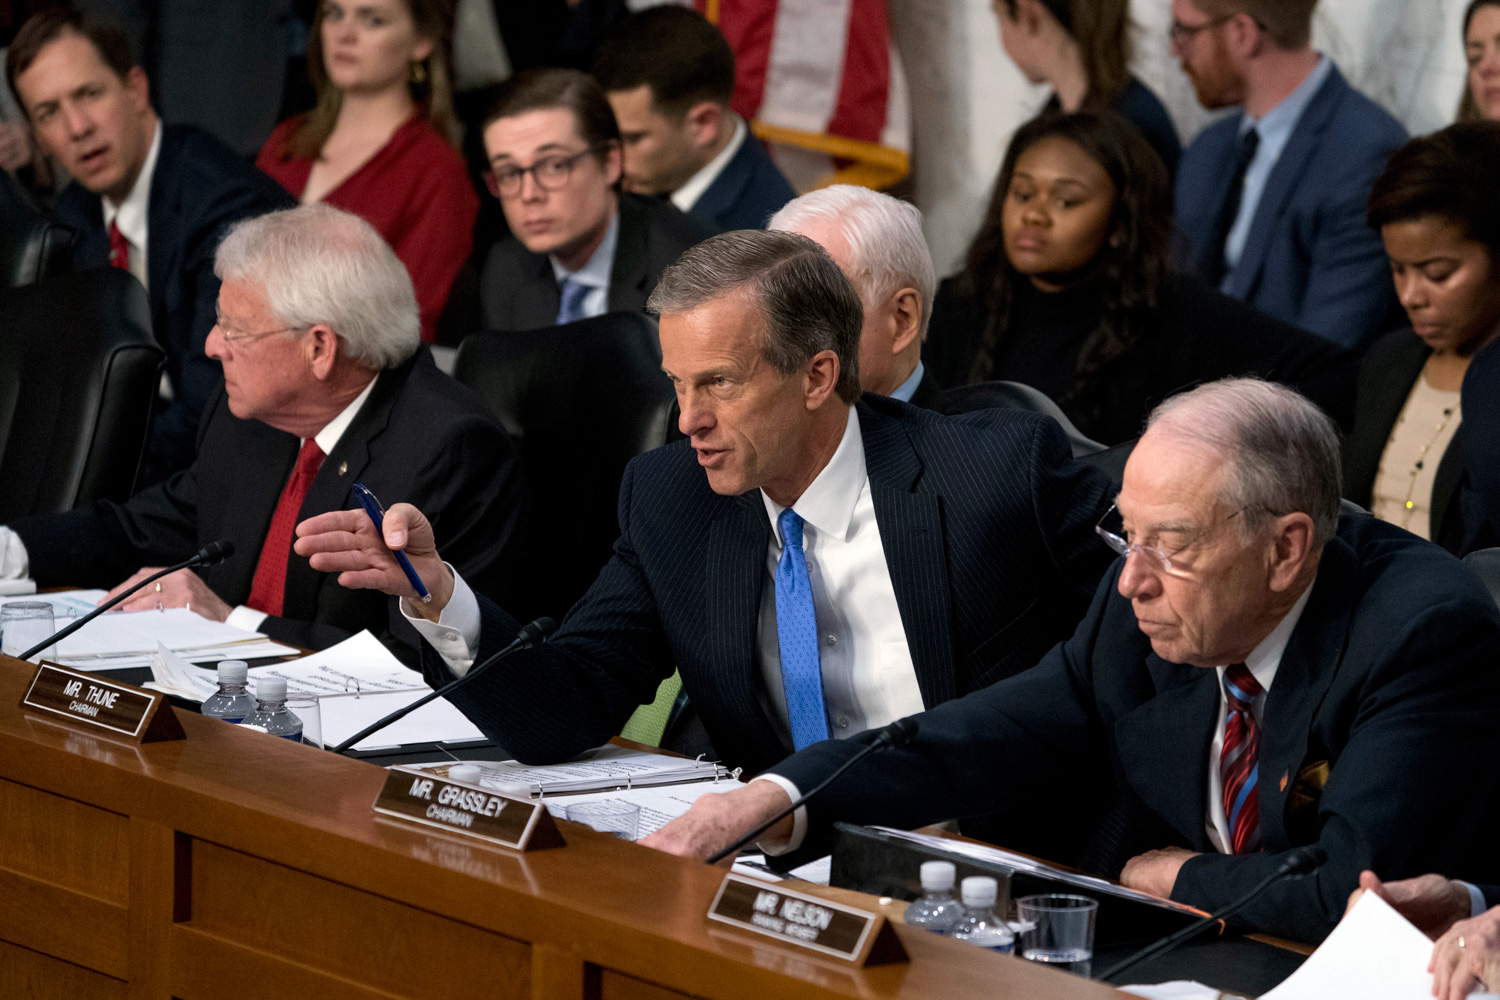 <div class='meta'><div class='origin-logo' data-origin='none'></div><span class='caption-text' data-credit='Andrew Harnik/AP Photo'>Sen. John Thune, R-S.D., center, questions Facebook CEO Mark Zuckerberg as he testifies before a joint hearing of the Commerce and Judiciary Committees on Capitol Hill.</span></div>